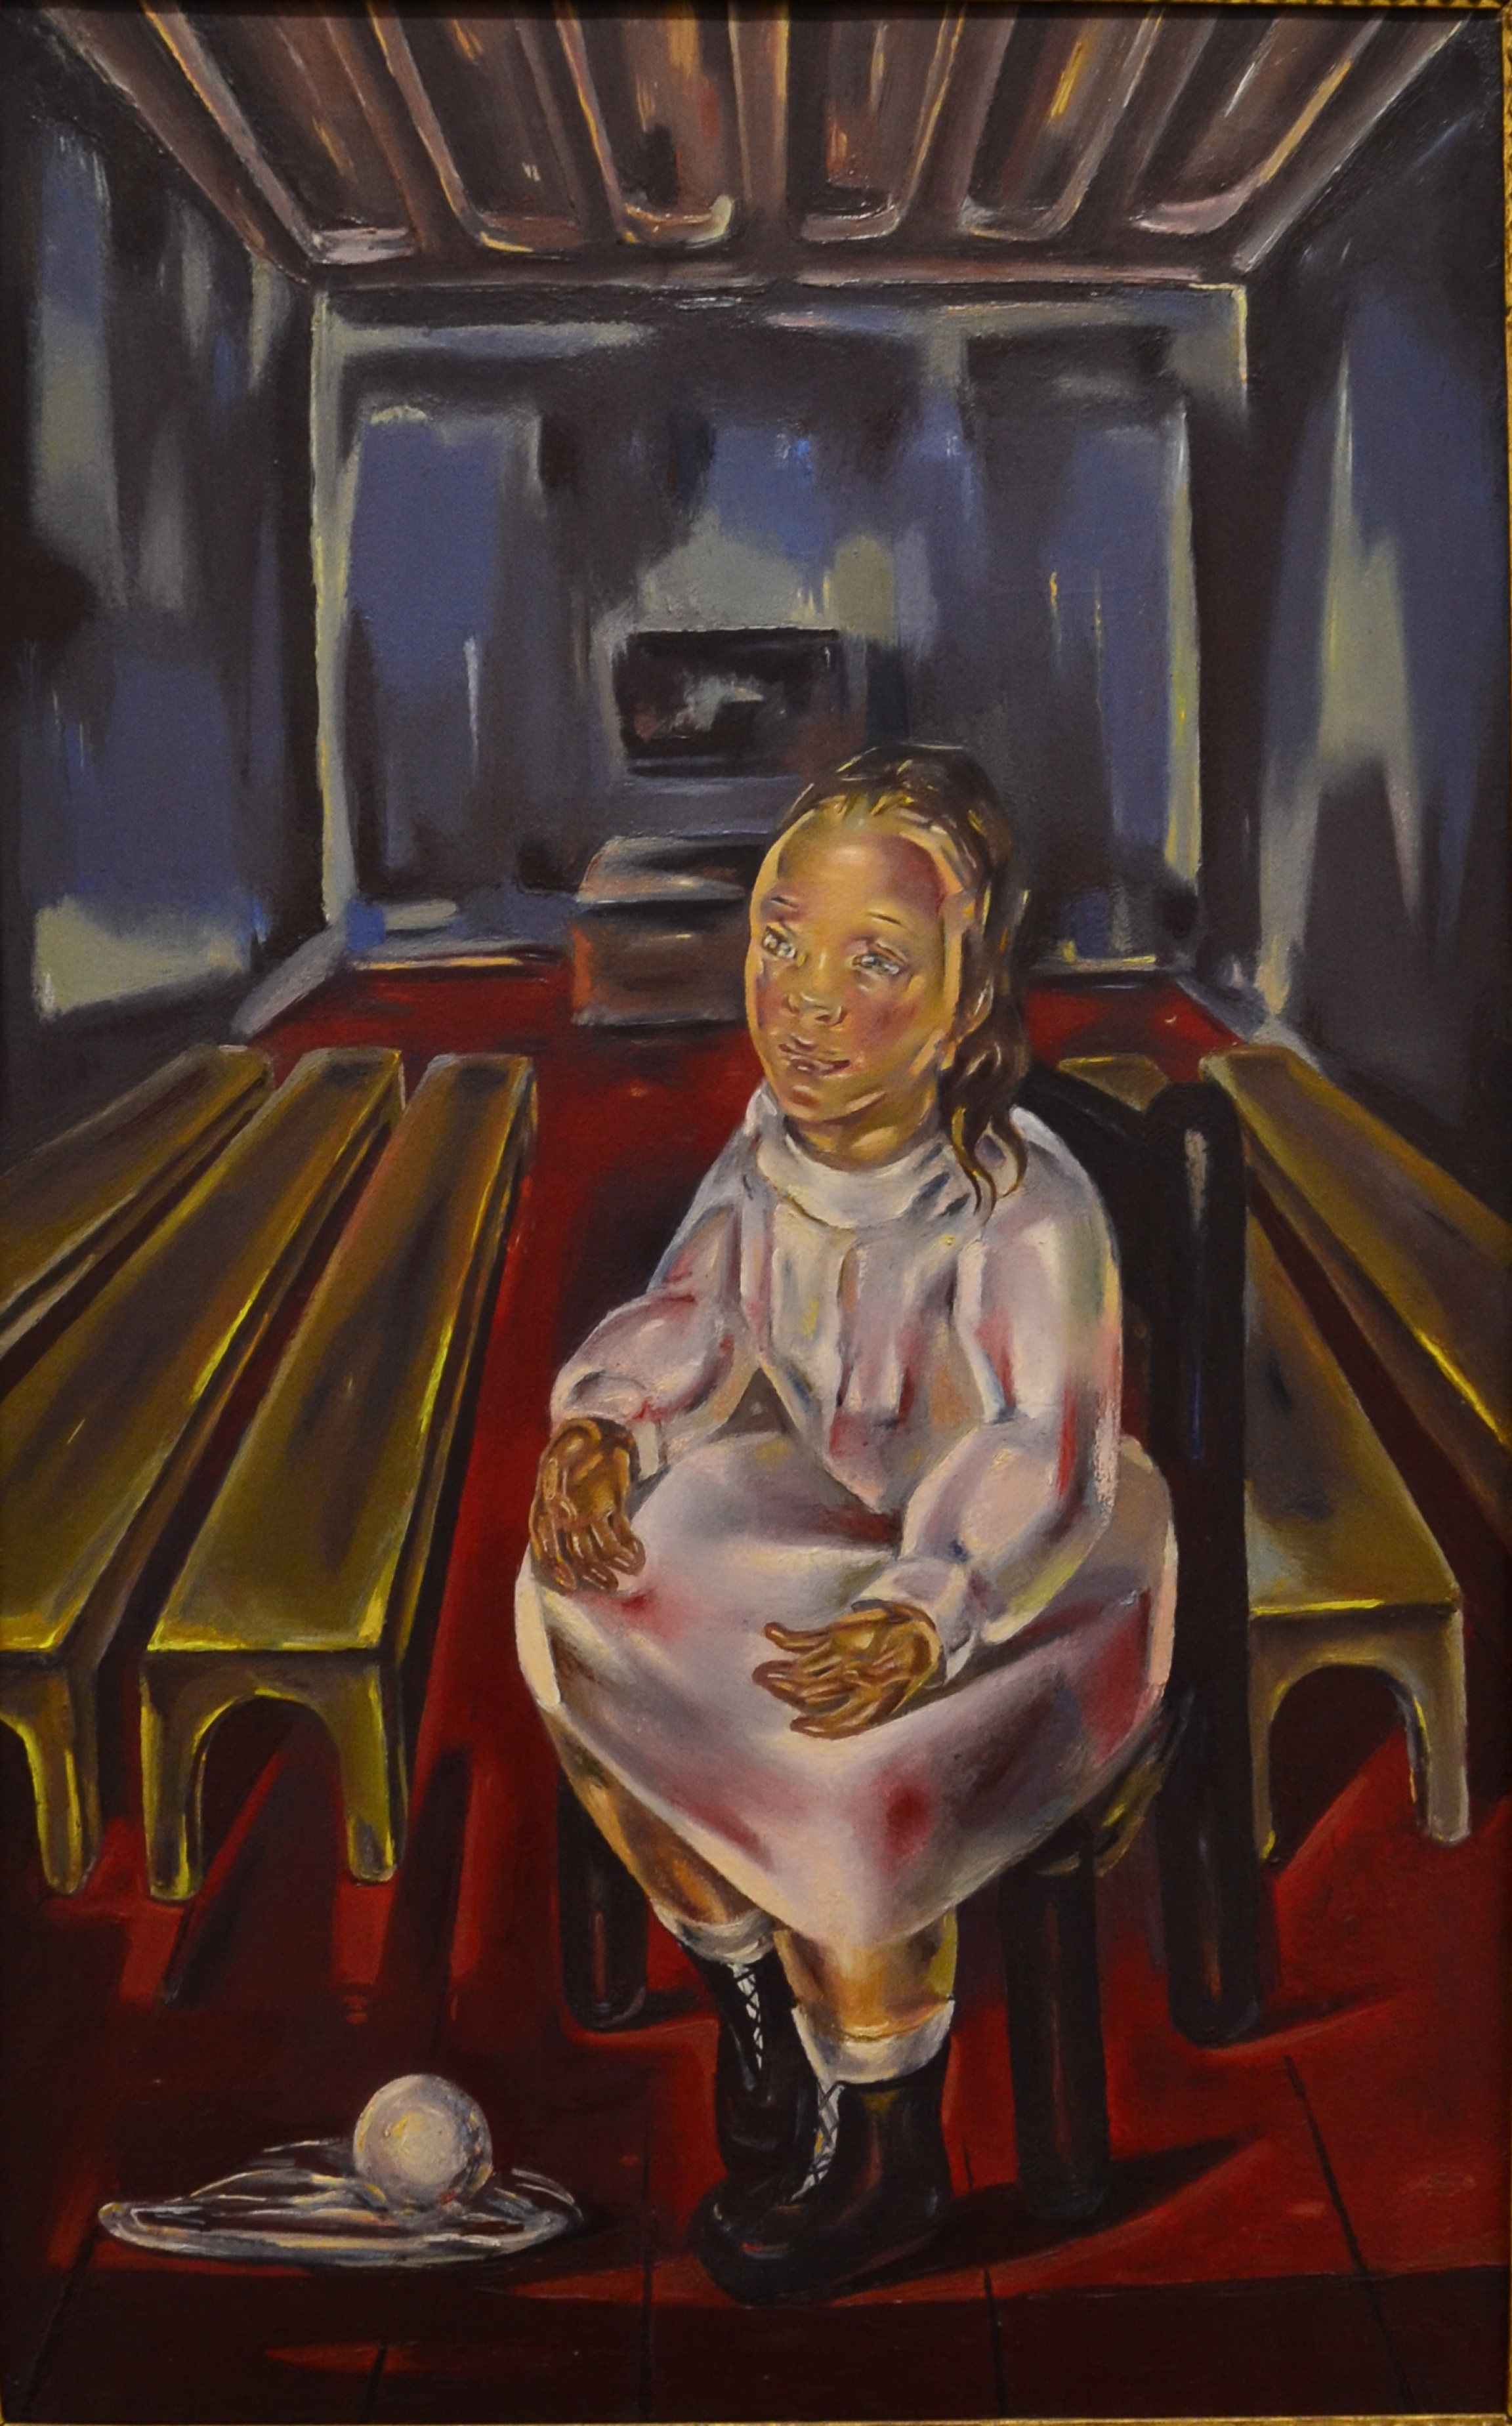 """María Blanchard (1881-1932), """"Seated Girl (in the bench room),"""" oil on canvas, 1925. Acquired at public sale in 1954."""